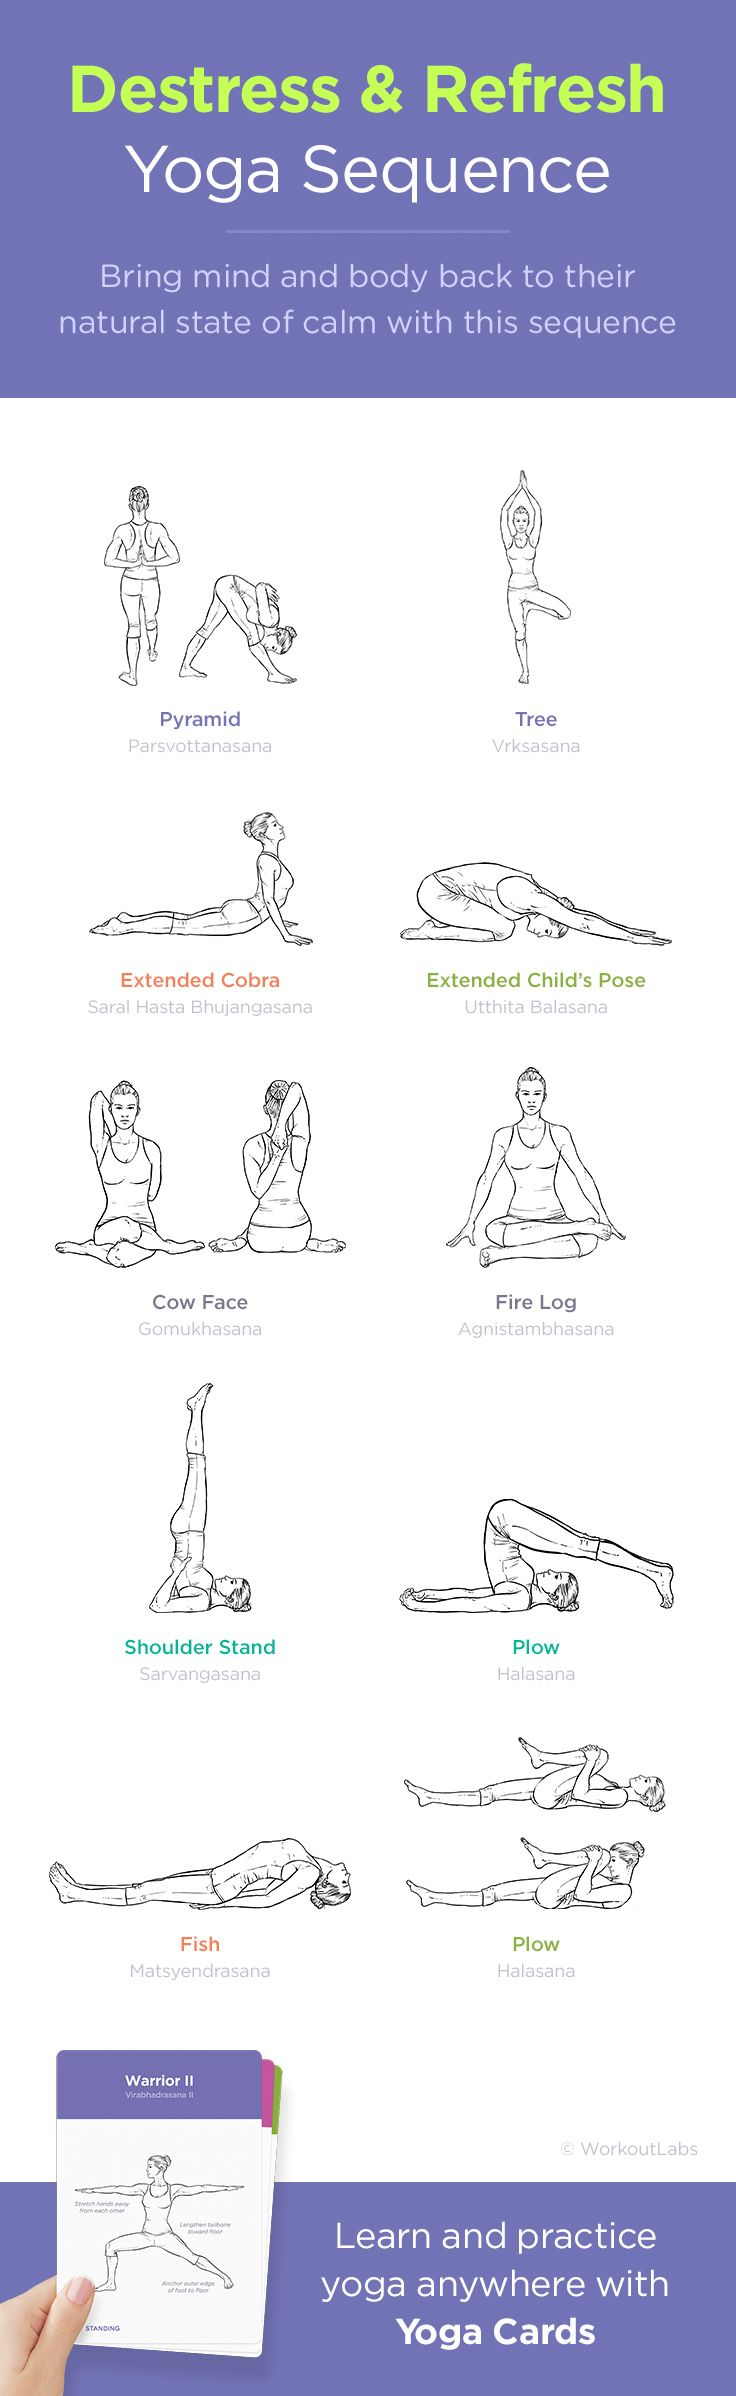 Bring mind and body back to their natural state of calm with this yoga sequence. Visit http://WLShop.co